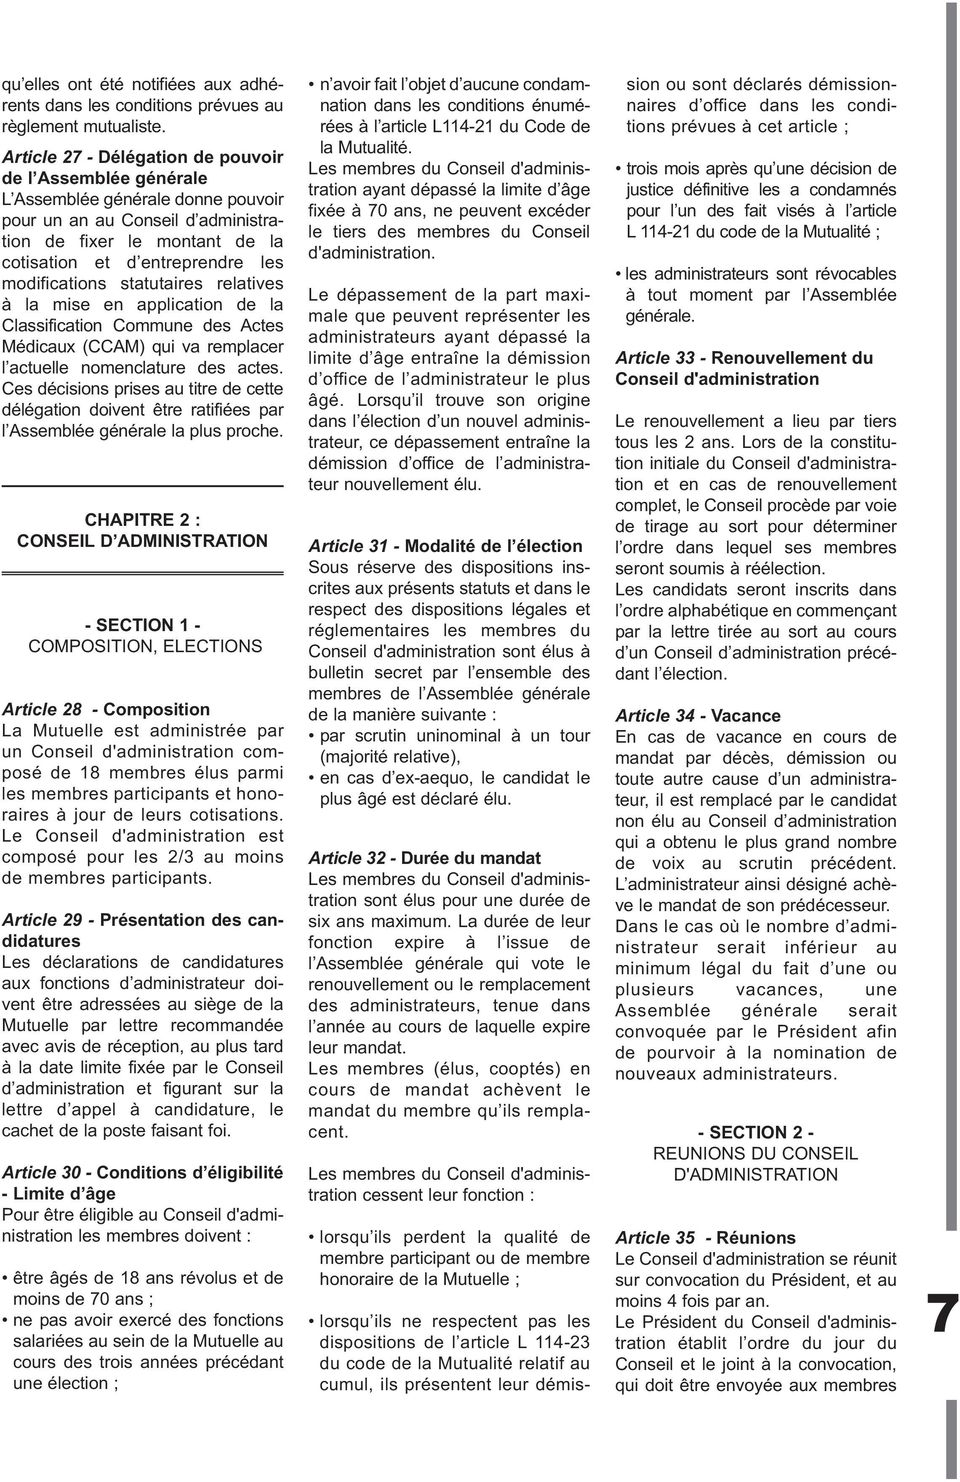 modifications statutaires relatives à la mise en application de la Classification Commune des Actes Médicaux (CCAM) qui va remplacer l actuelle nomenclature des actes.